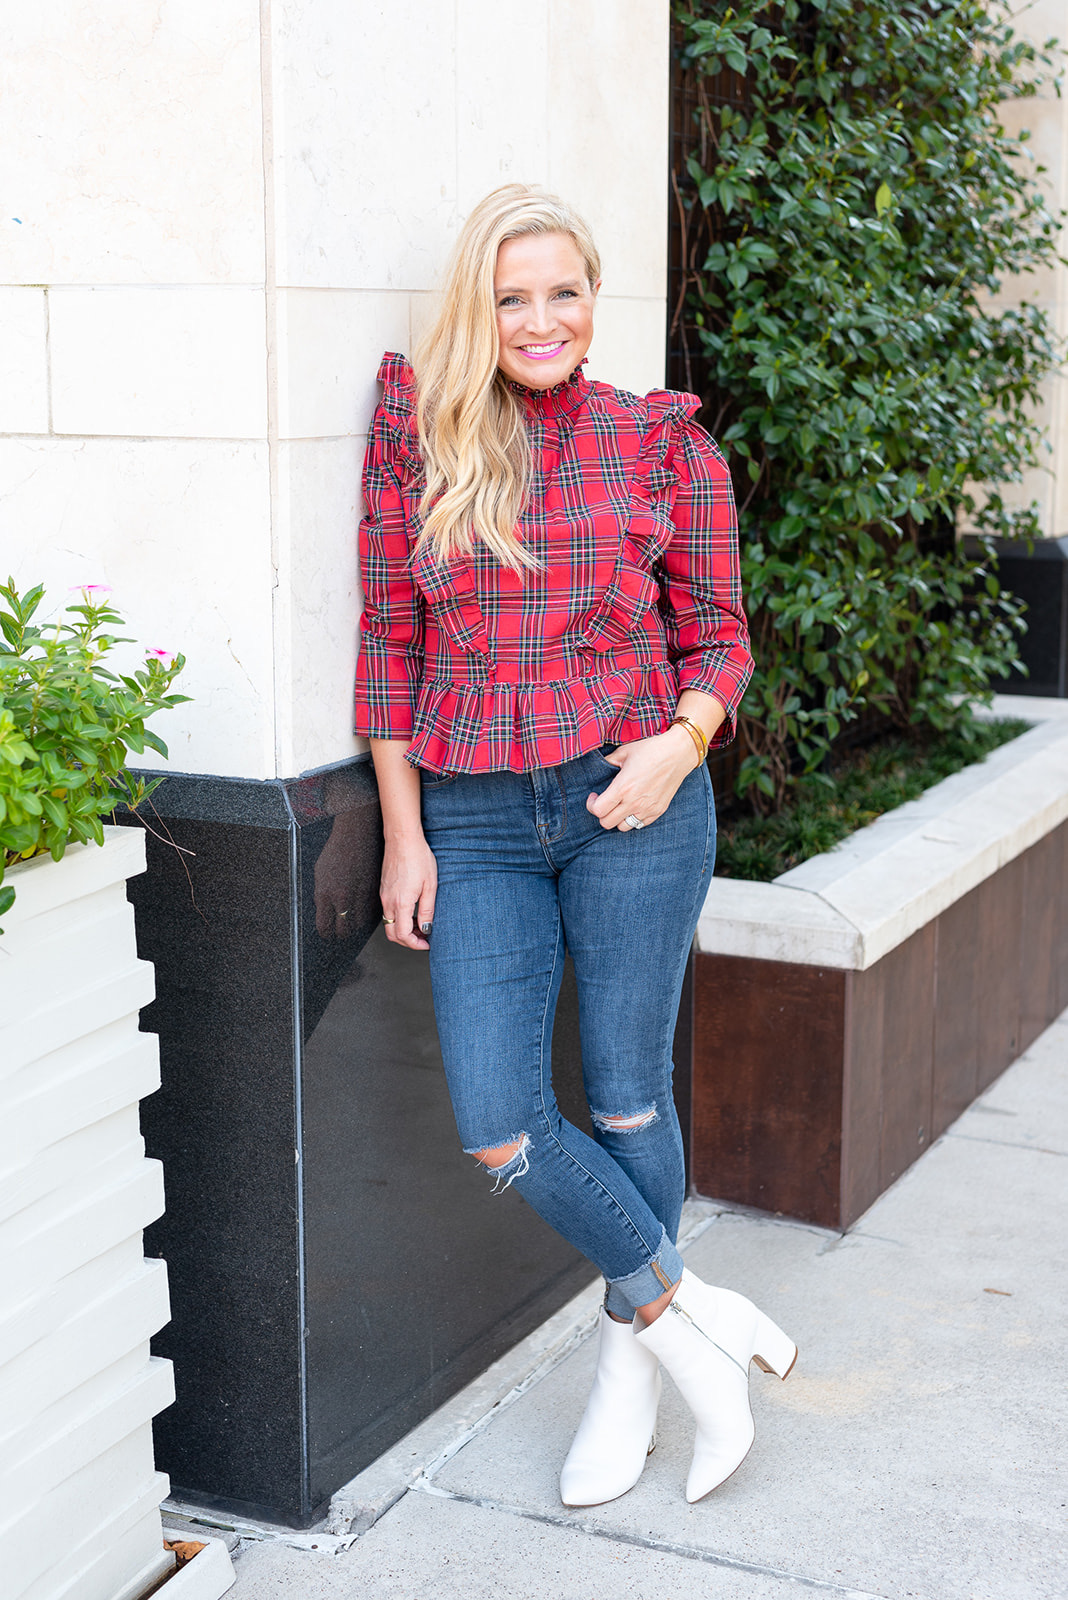 Fall Plaid by popular Houston fashion blog, Fancy Ashley: image of a woman wearing a a red ruffle plaid top, jeans, and white ankle boots.